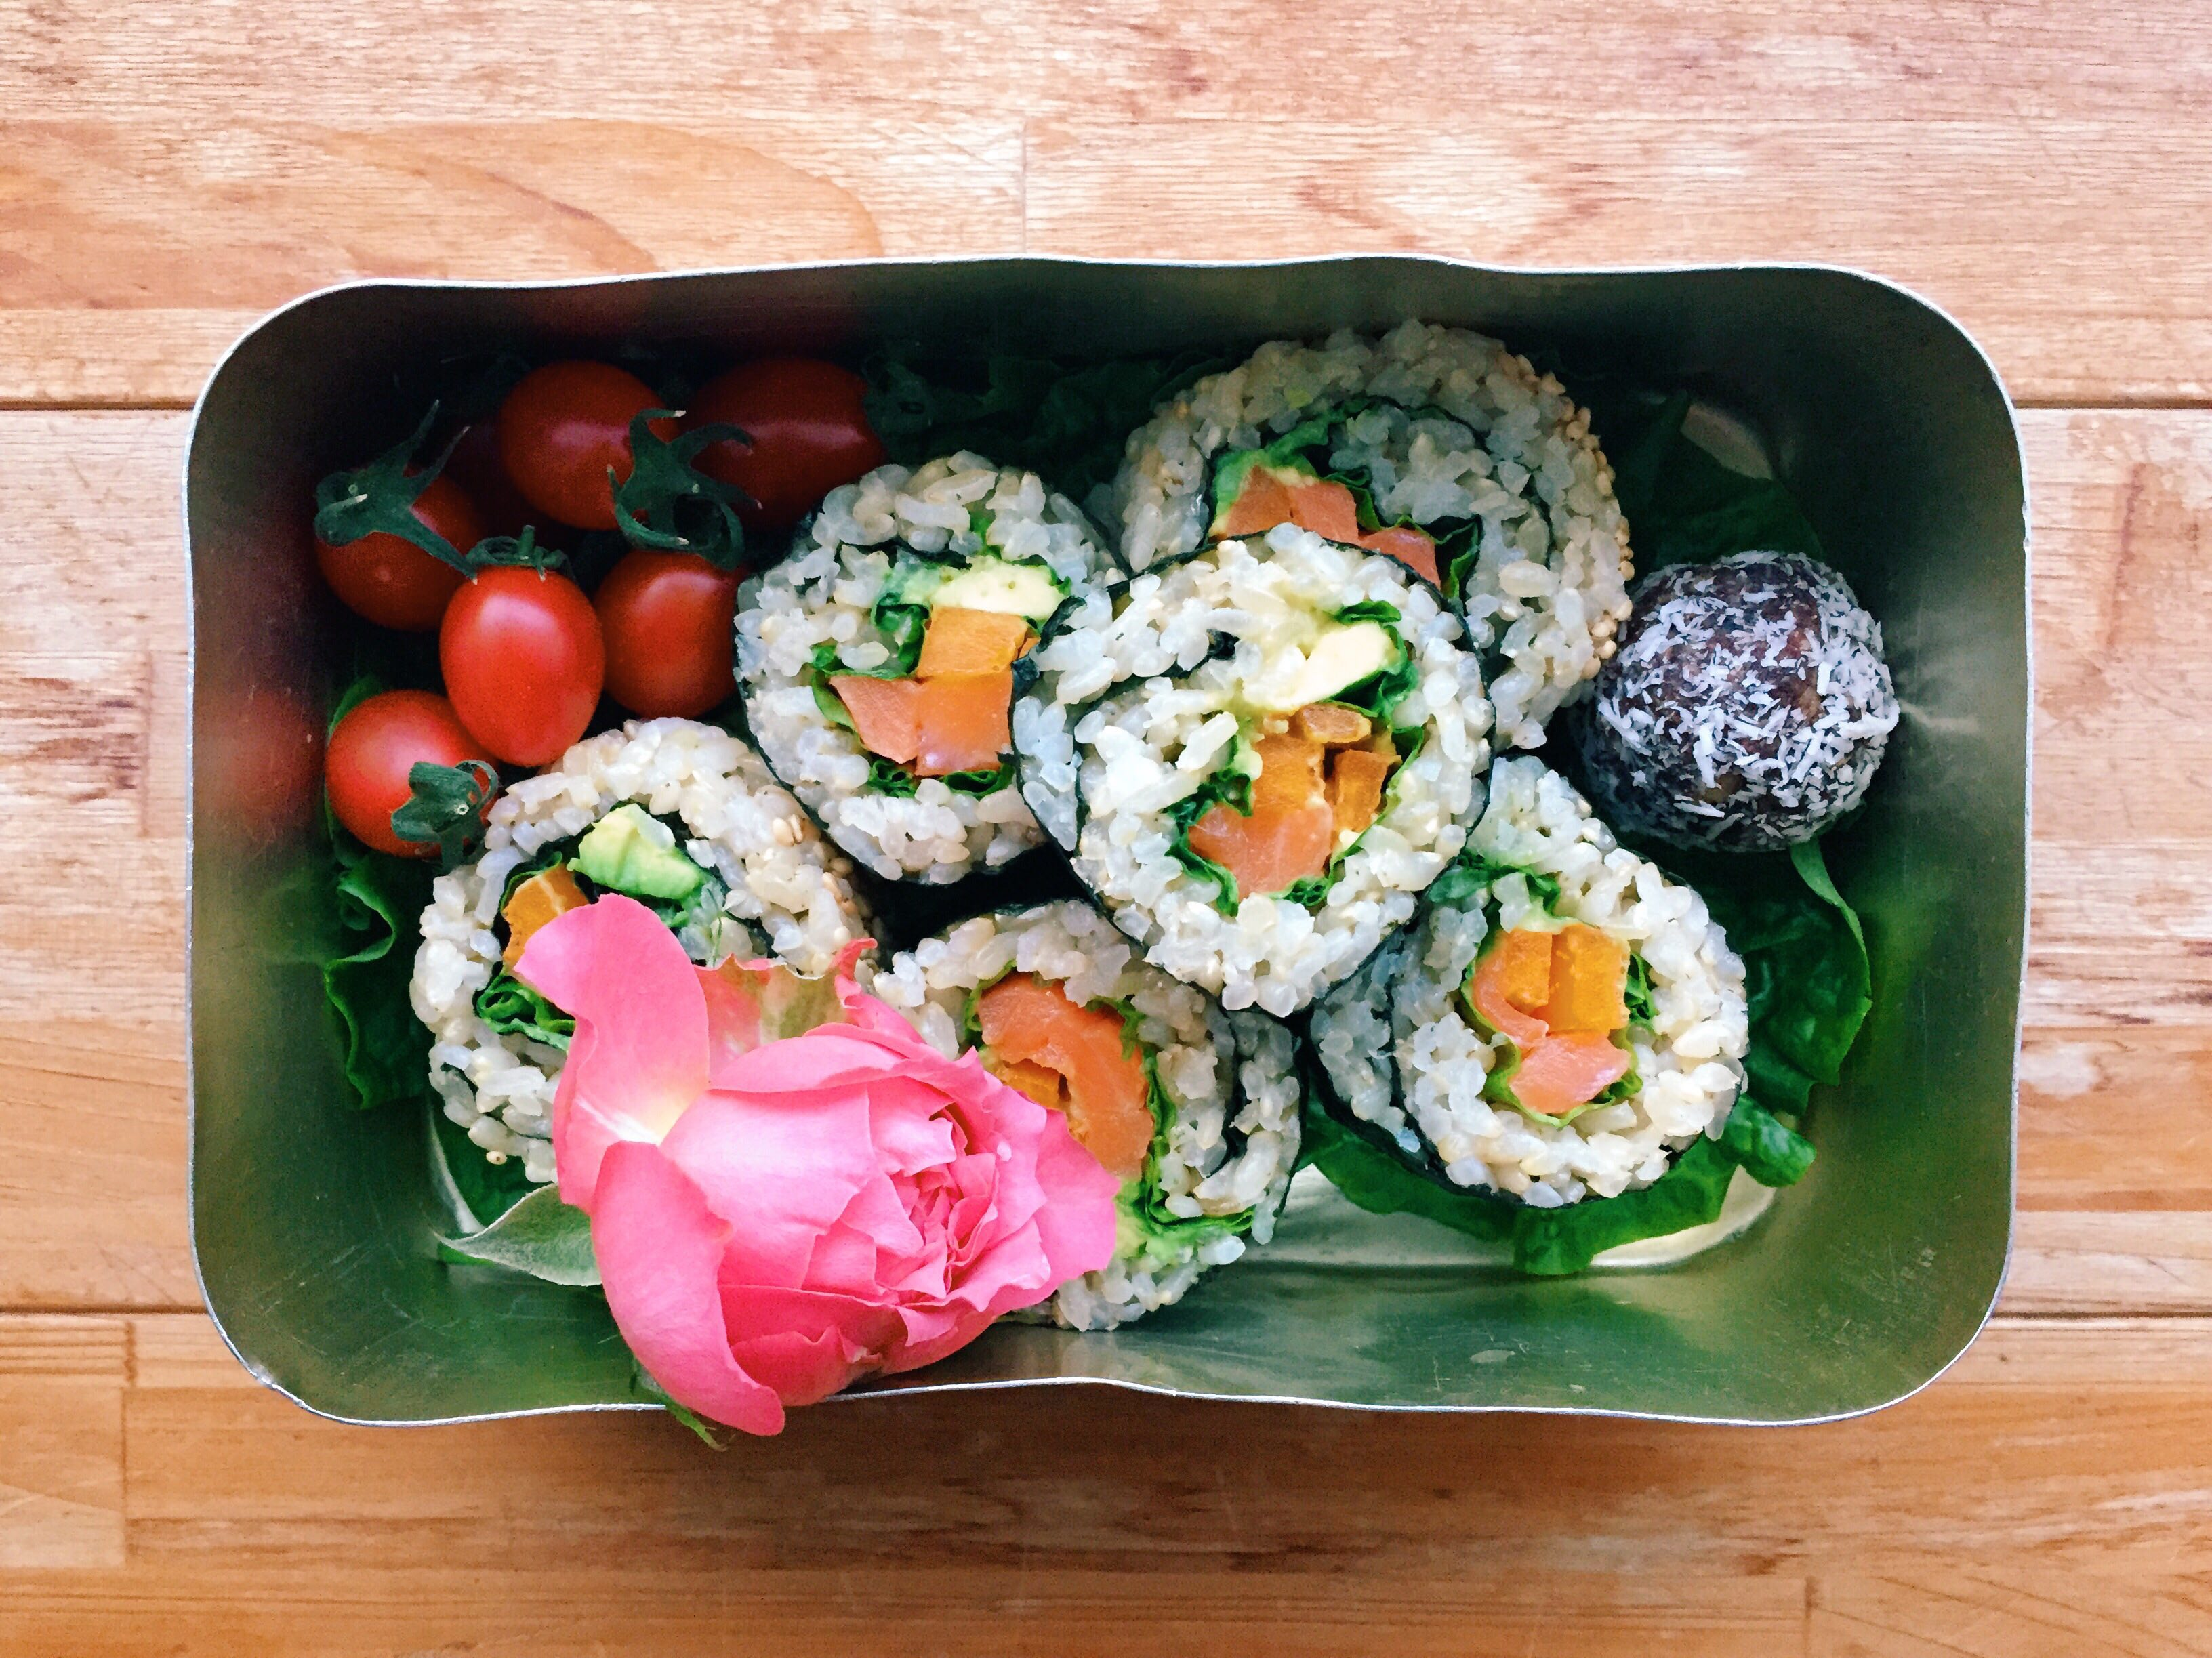 Beautifully presented Japanese bento with sushi